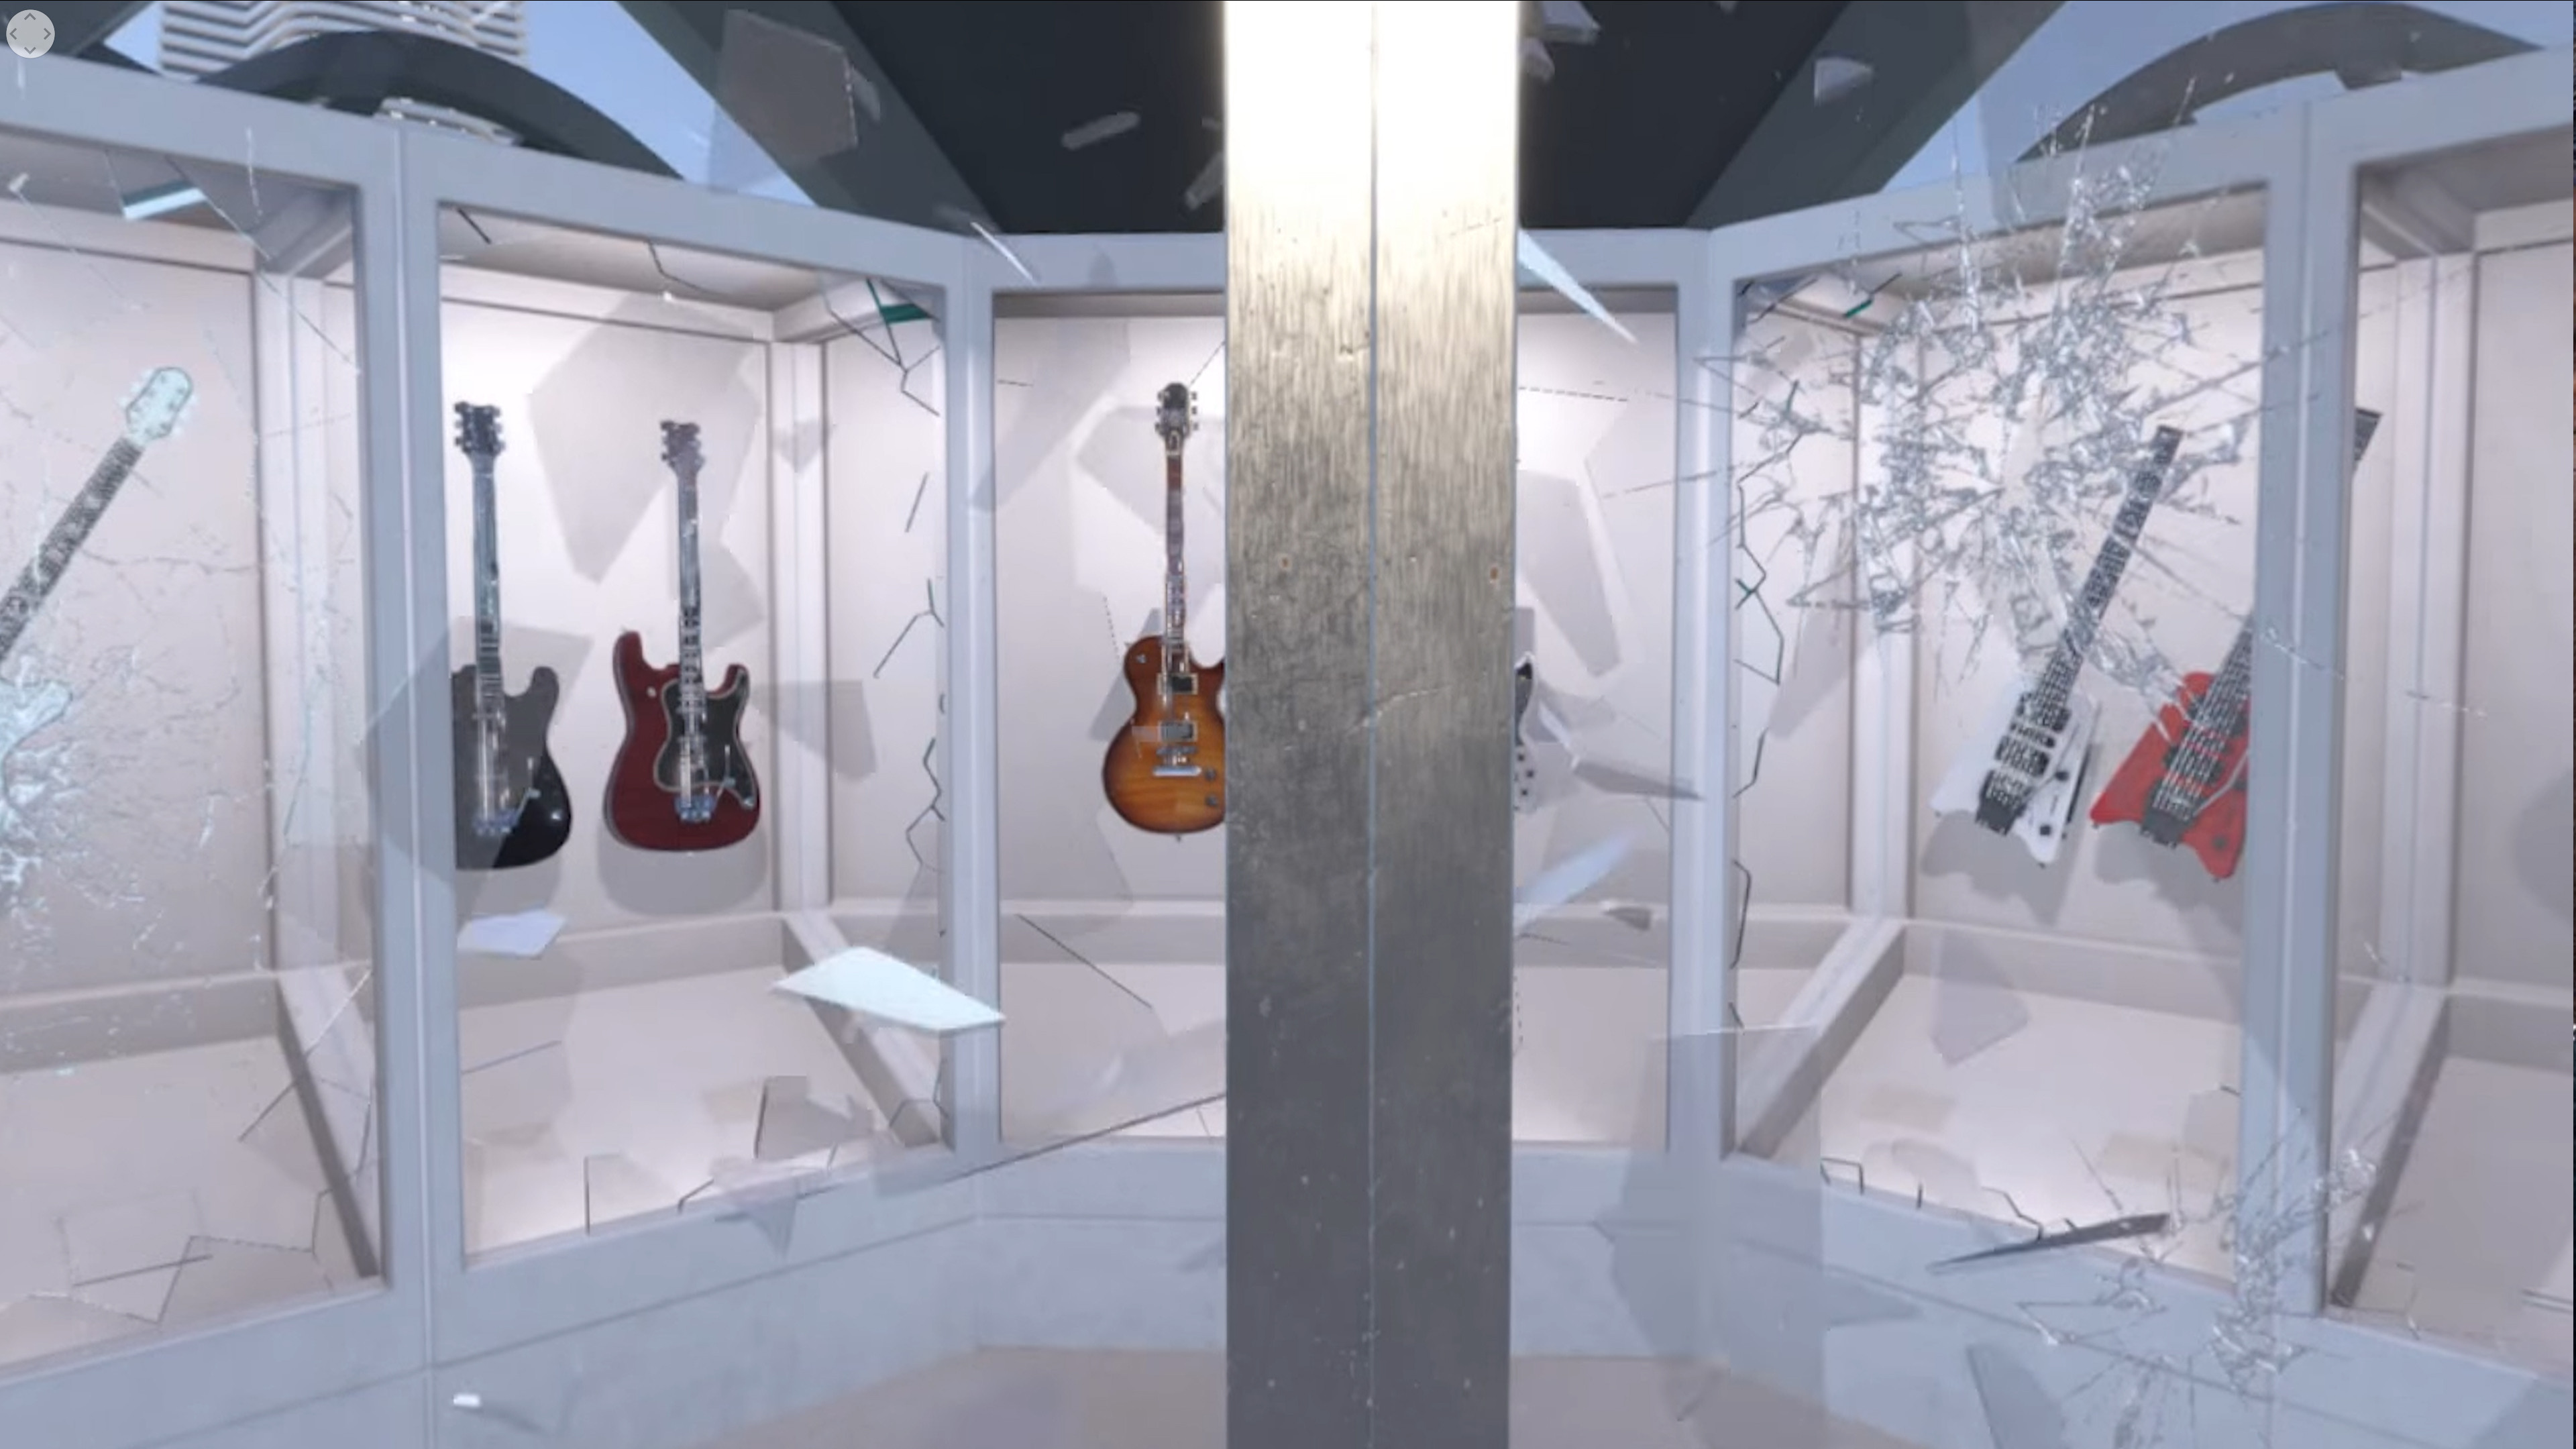 Created level art and lighting for the Great Dome scene.